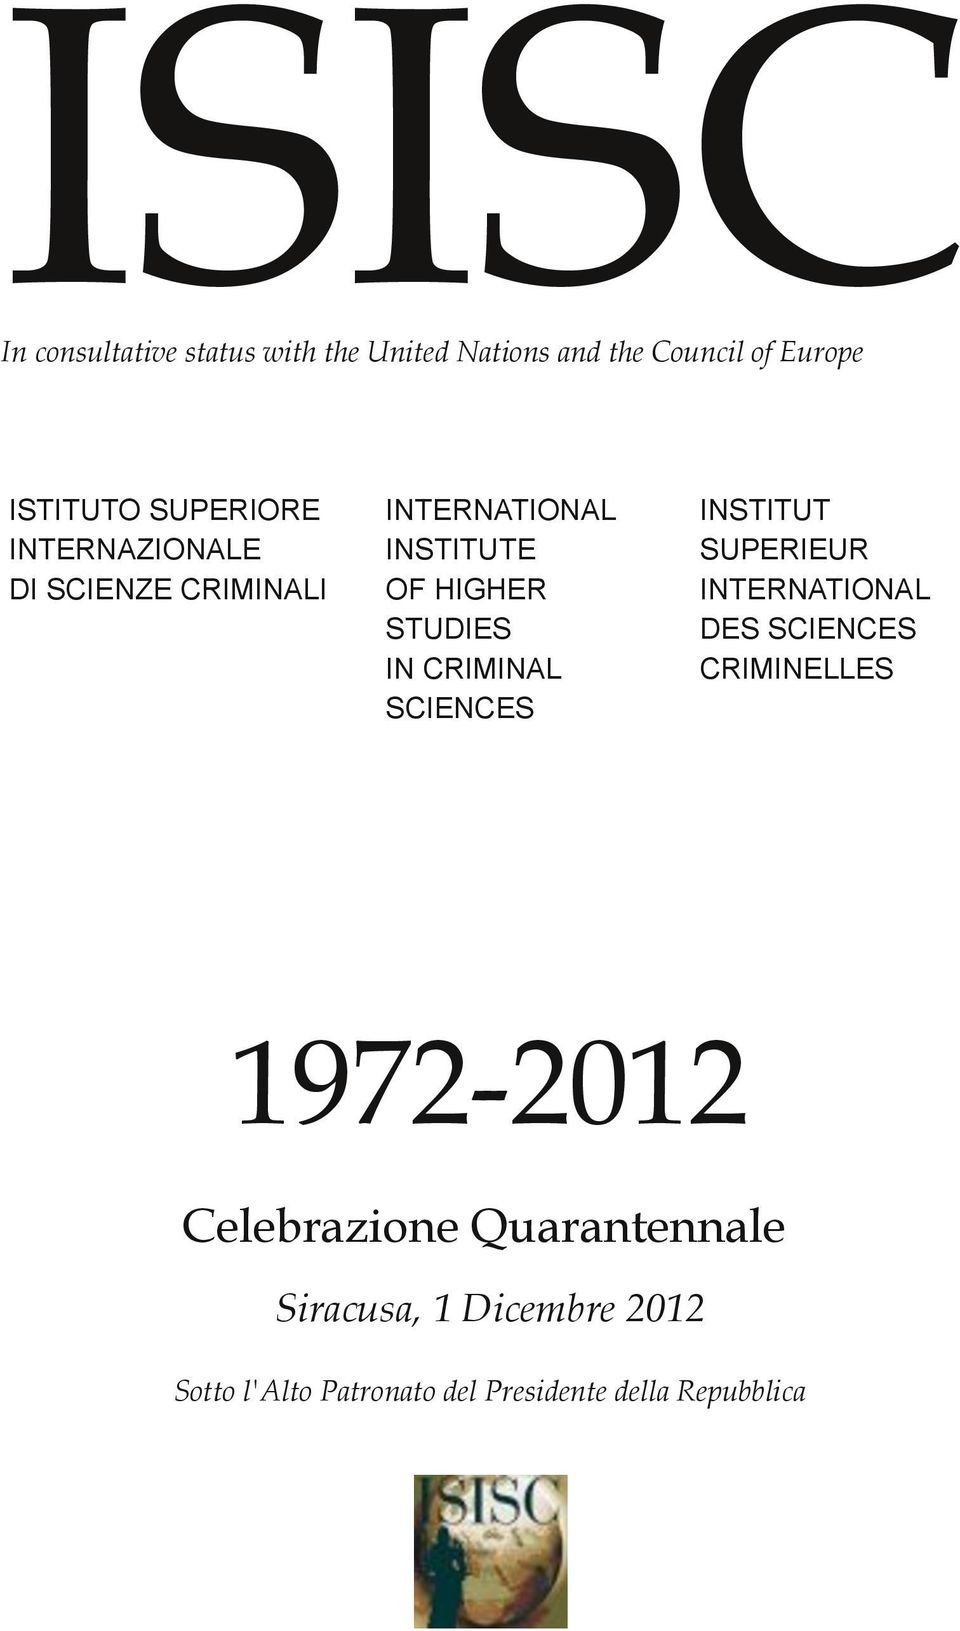 CRIMINAL SCIENCES INSTITUT SUPERIEUR INTERNATIONAL DES SCIENCES CRIMINELLES 1972-2012